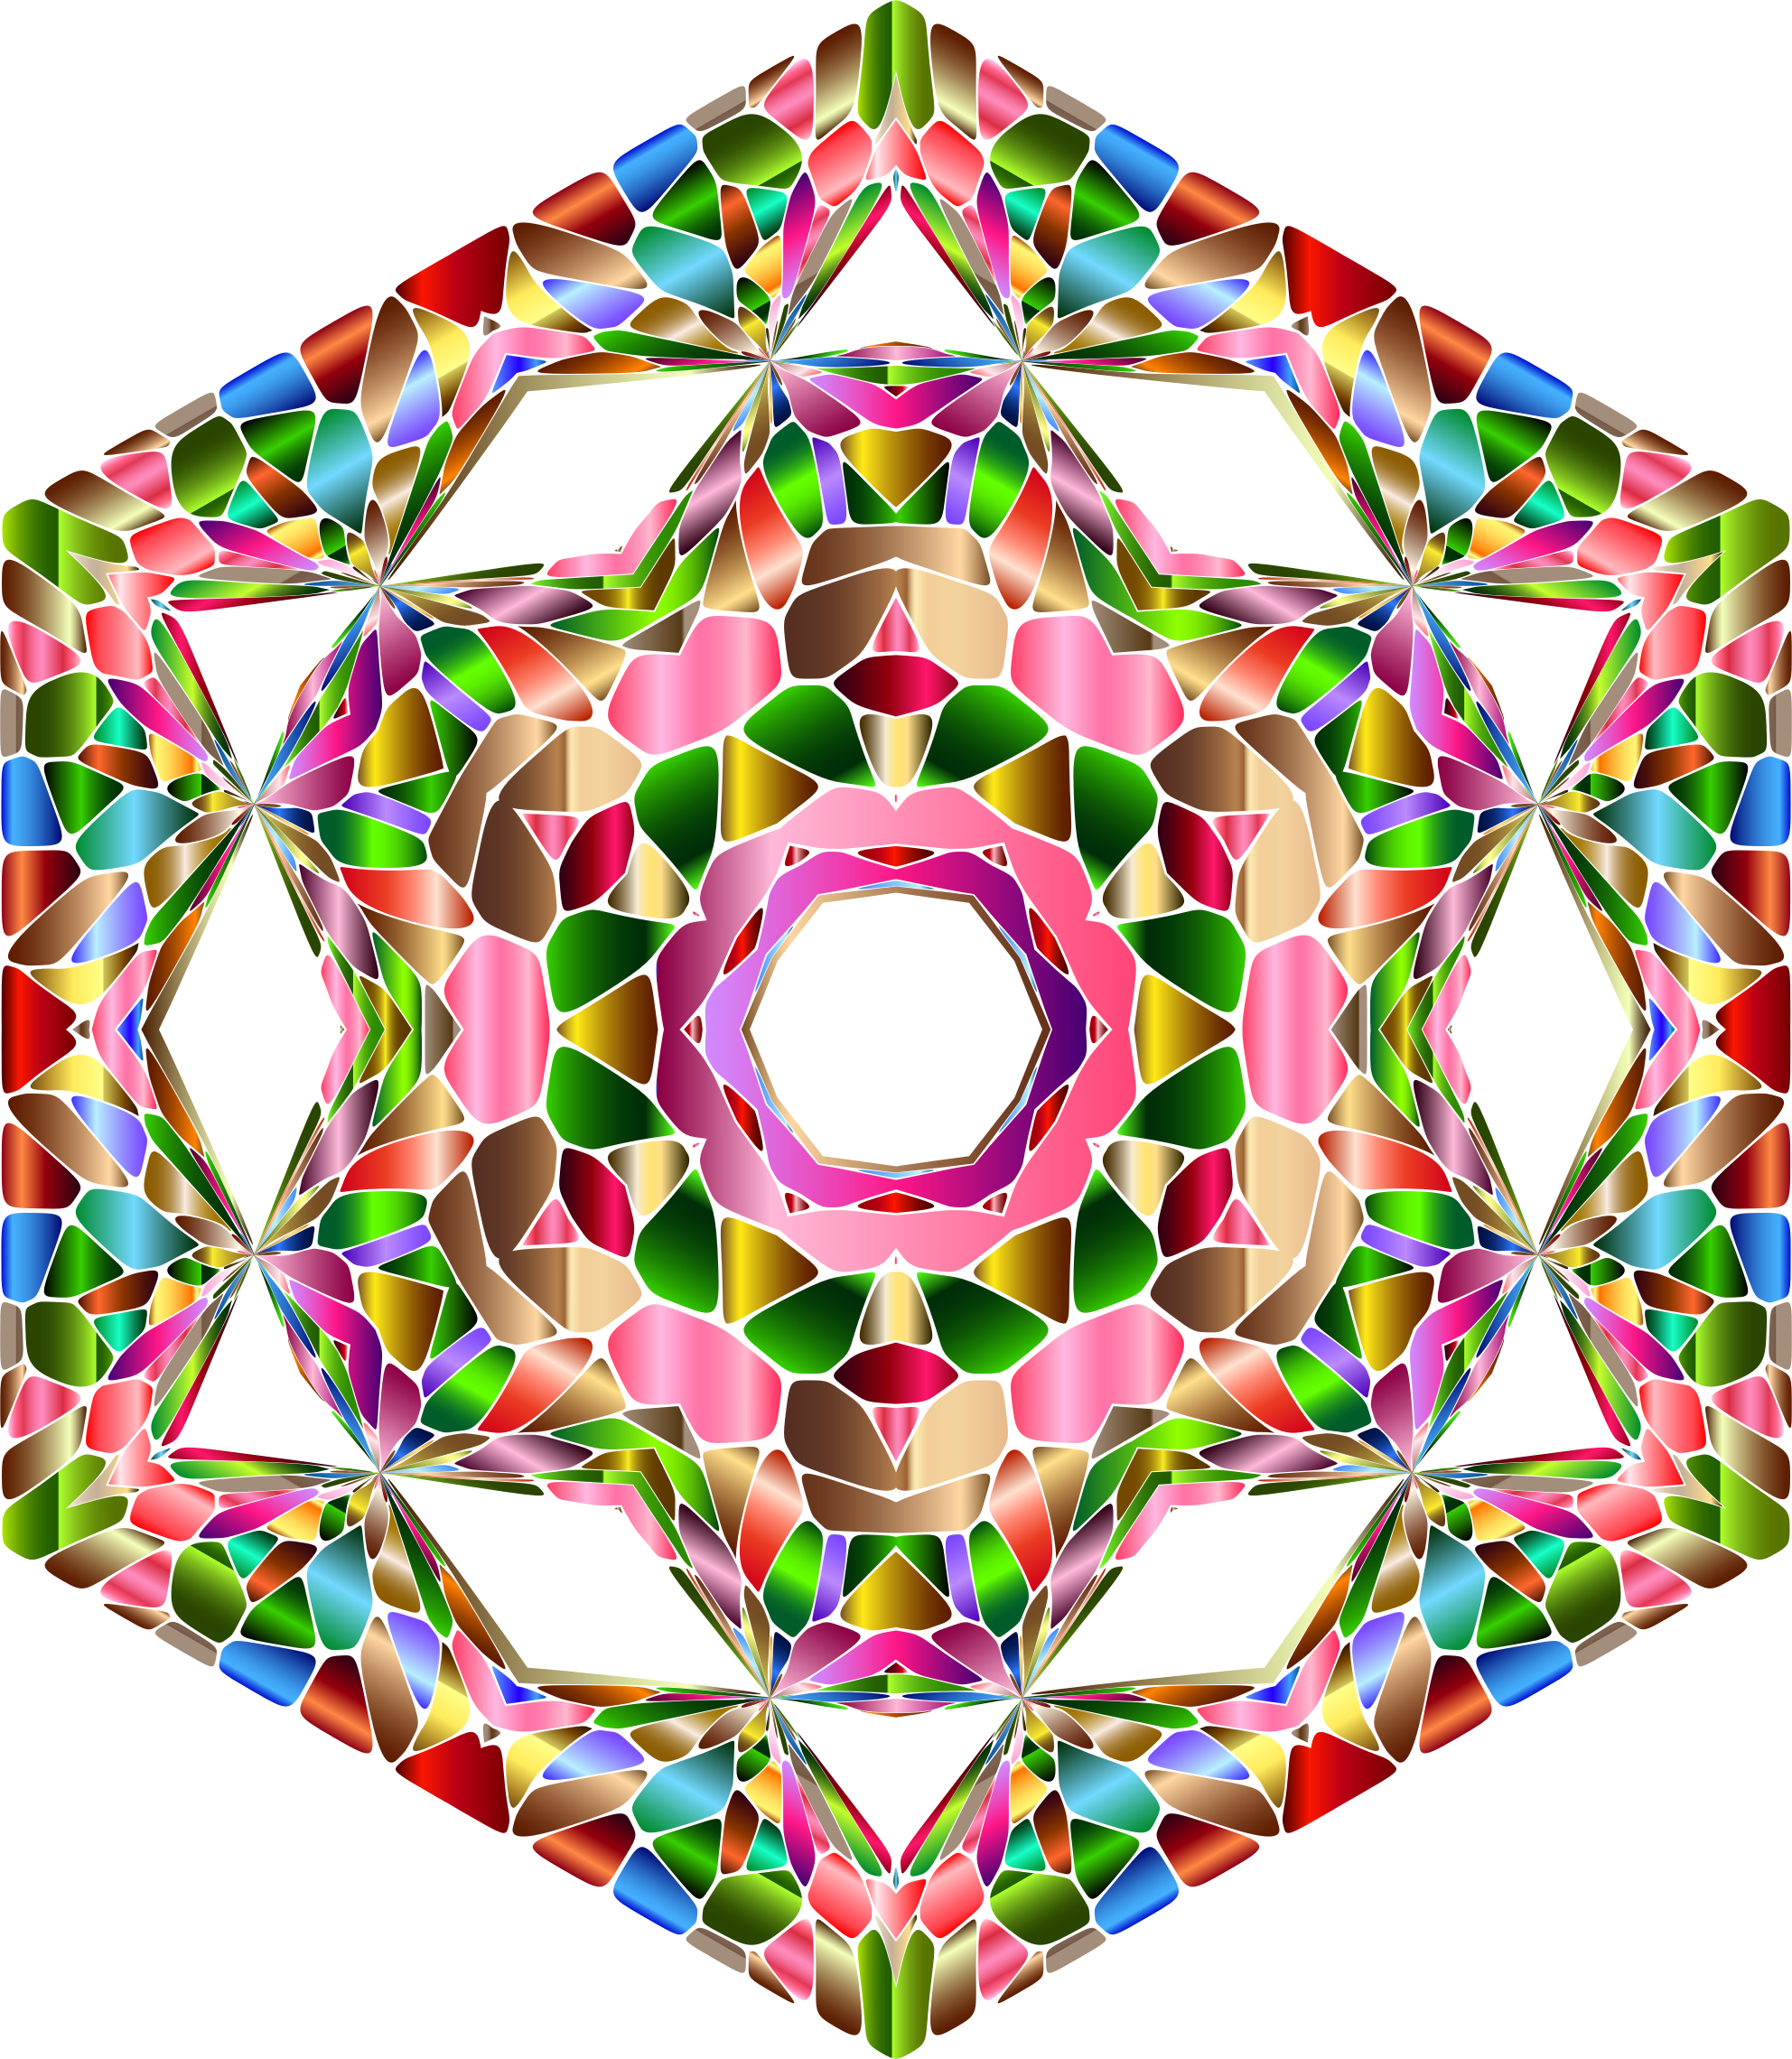 Chromatic Geometry 6 by GDJ